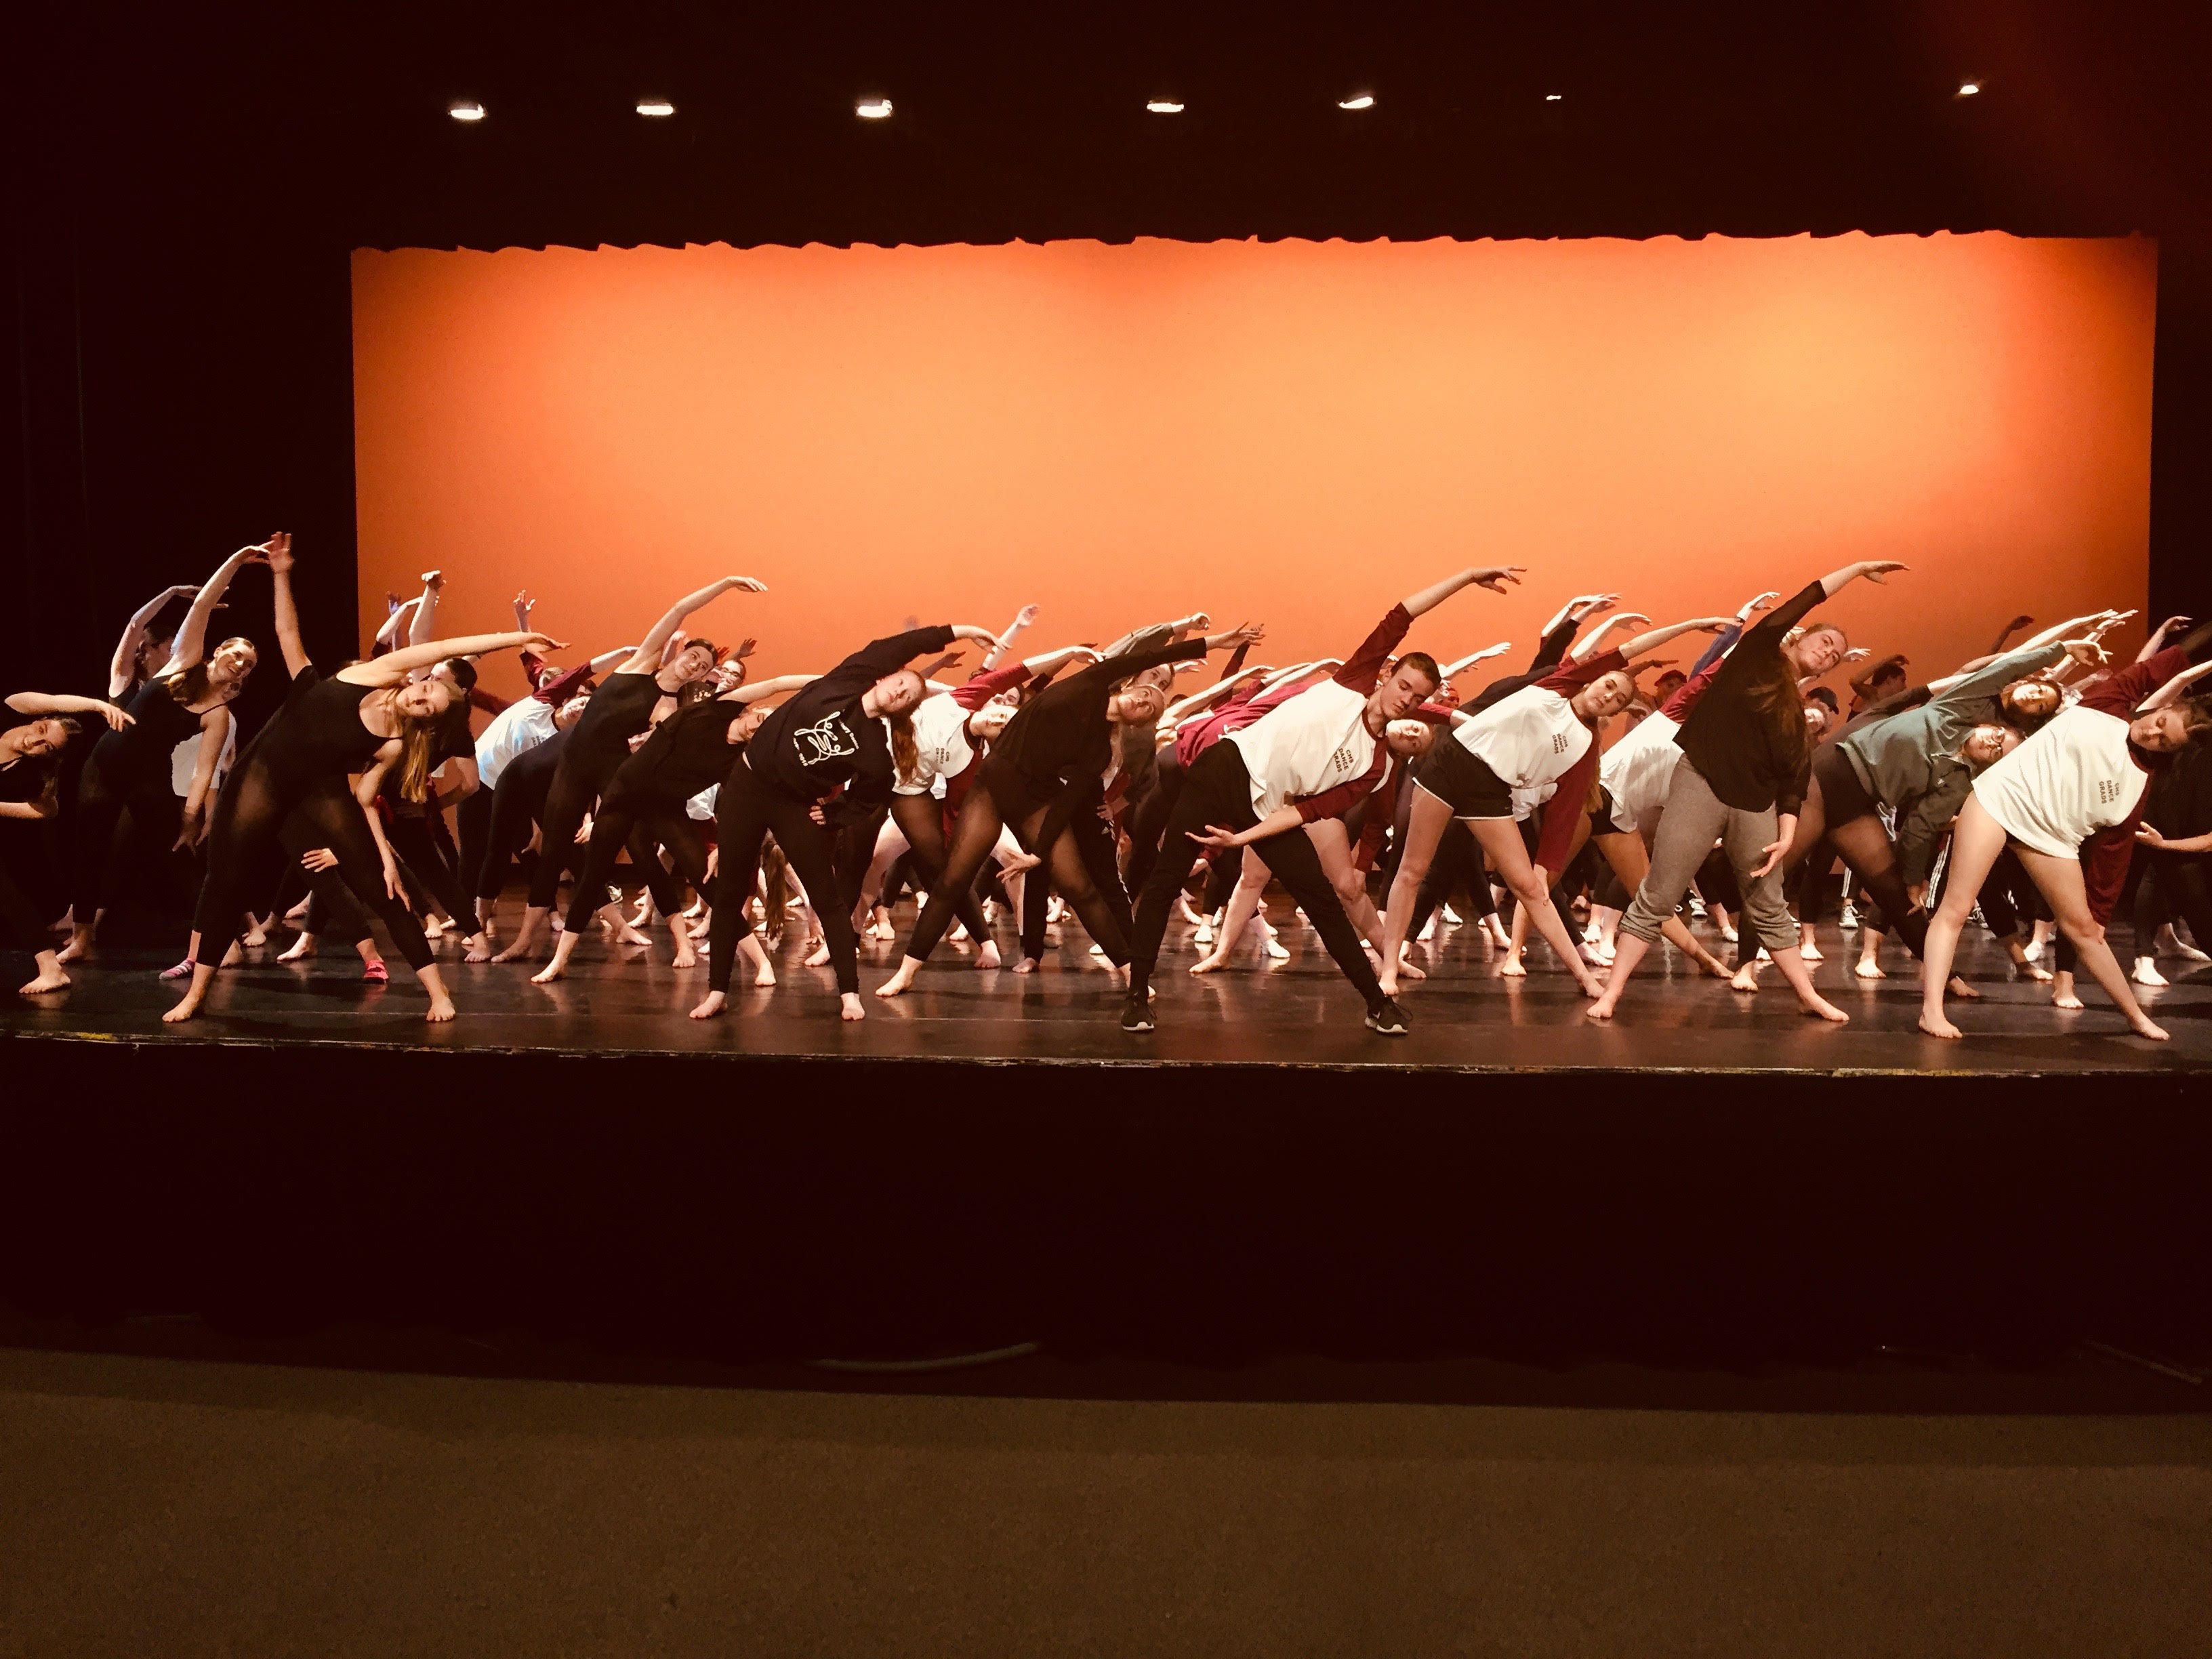 Pre-performance warm-up on the stage